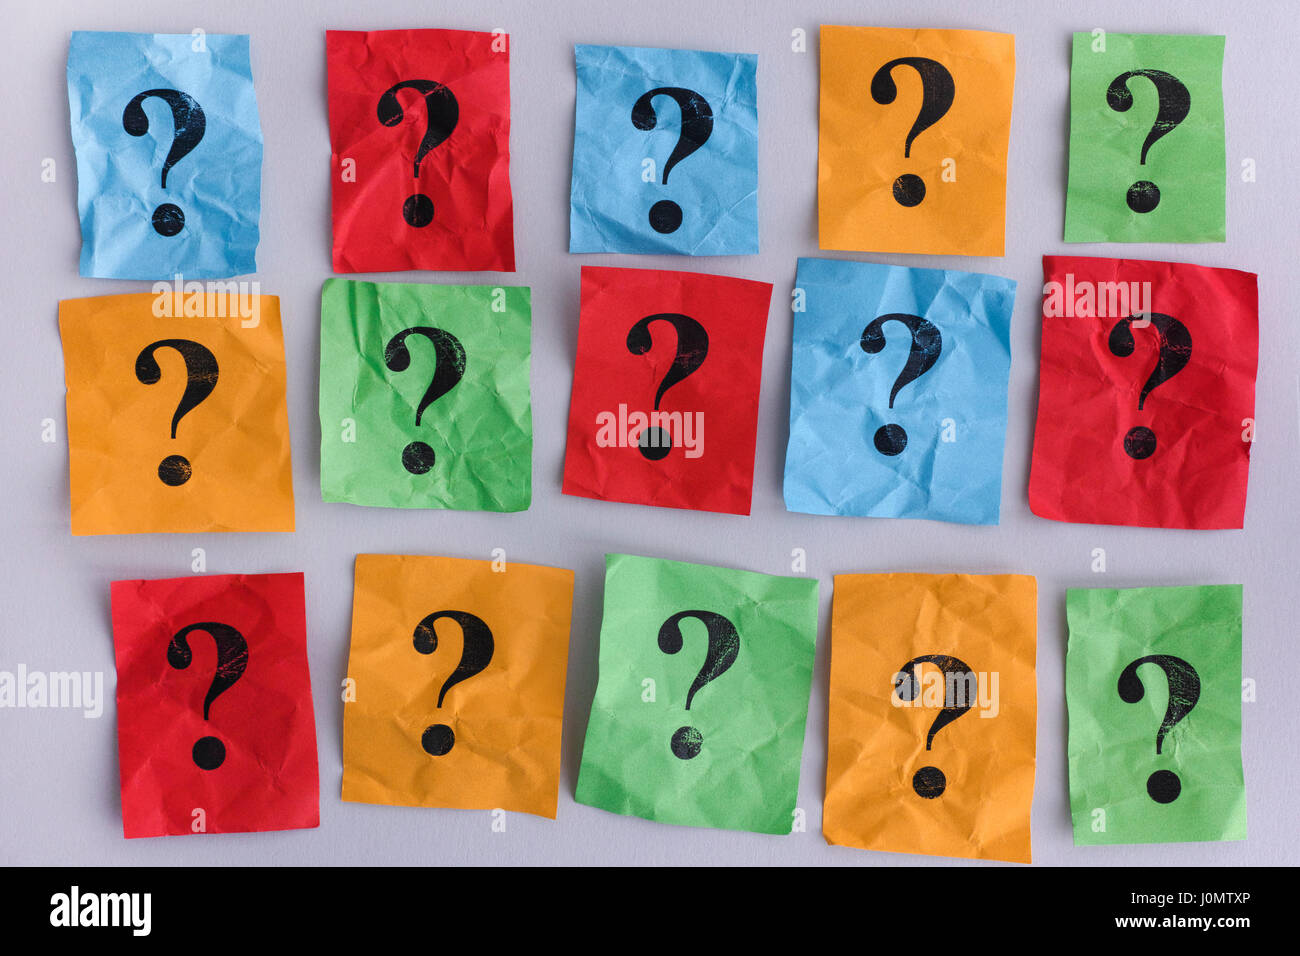 Question marks. Colorful paper notes with question marks. Concept image. Closeup. Stock Photo